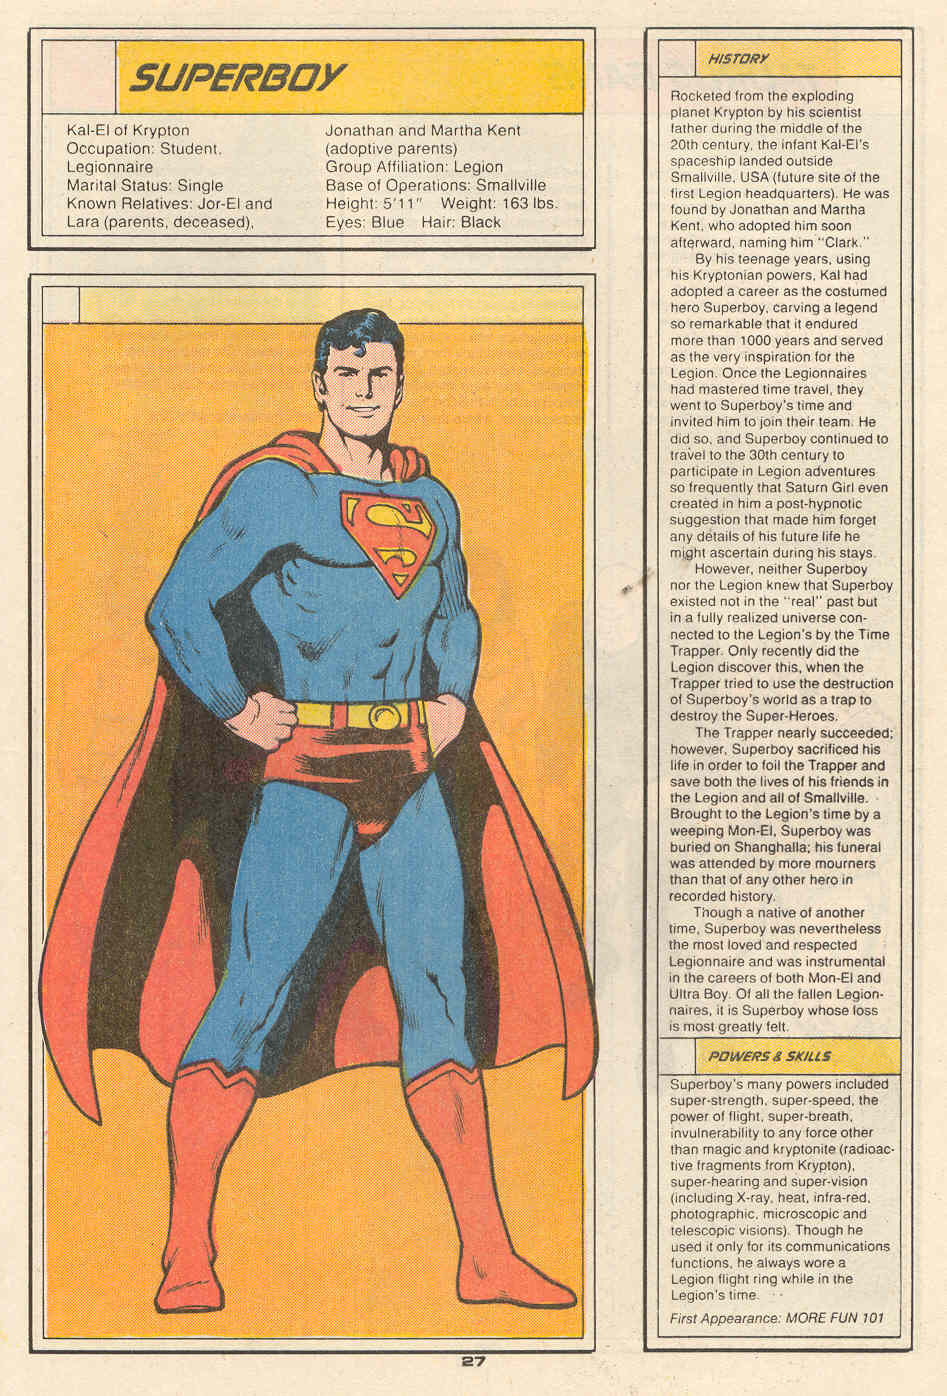 Superboy by Curt Swan and Ty Templeton - Who's Who in the Legion of Super-Heroes #6